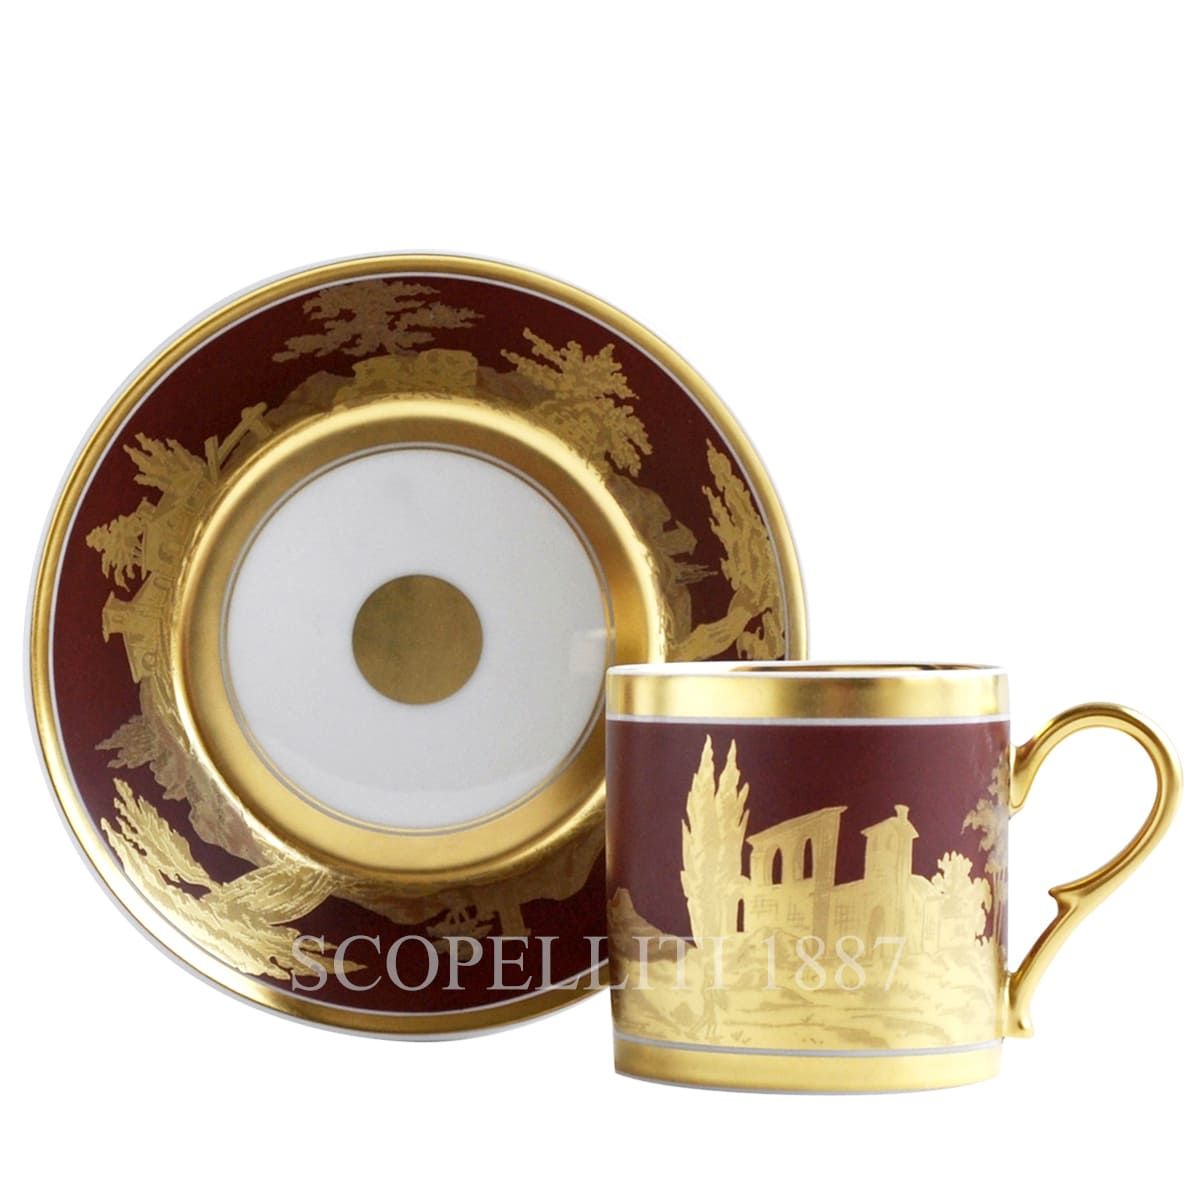 limoges historic royal ceramic